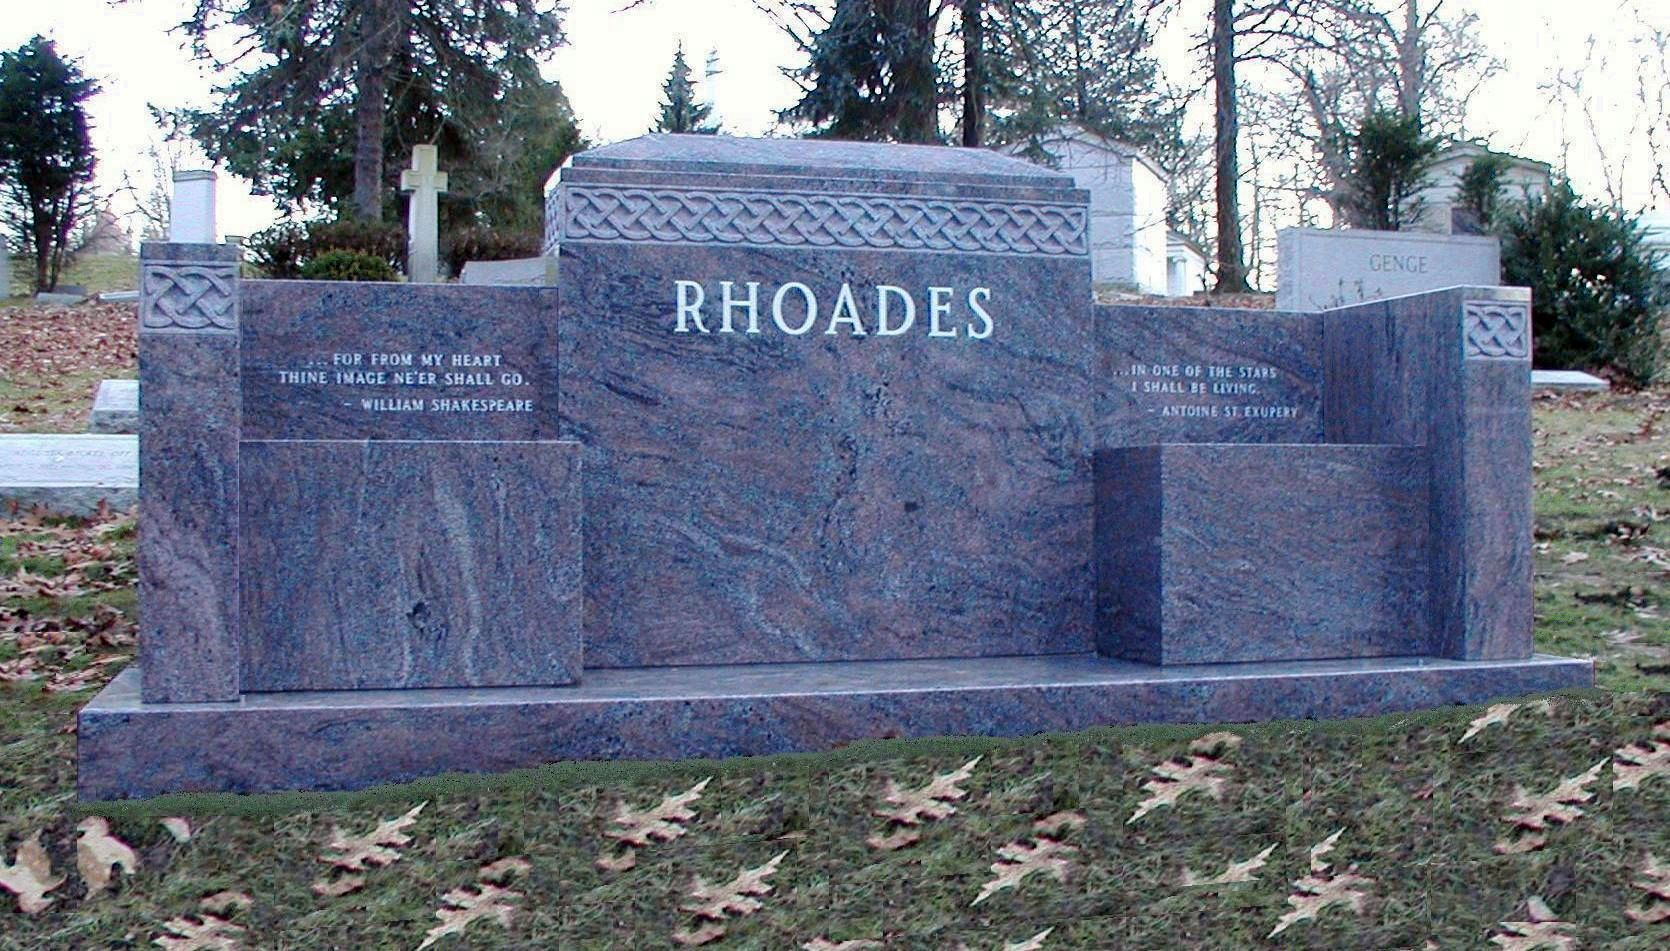 Rhoades-Fixed-Cropped